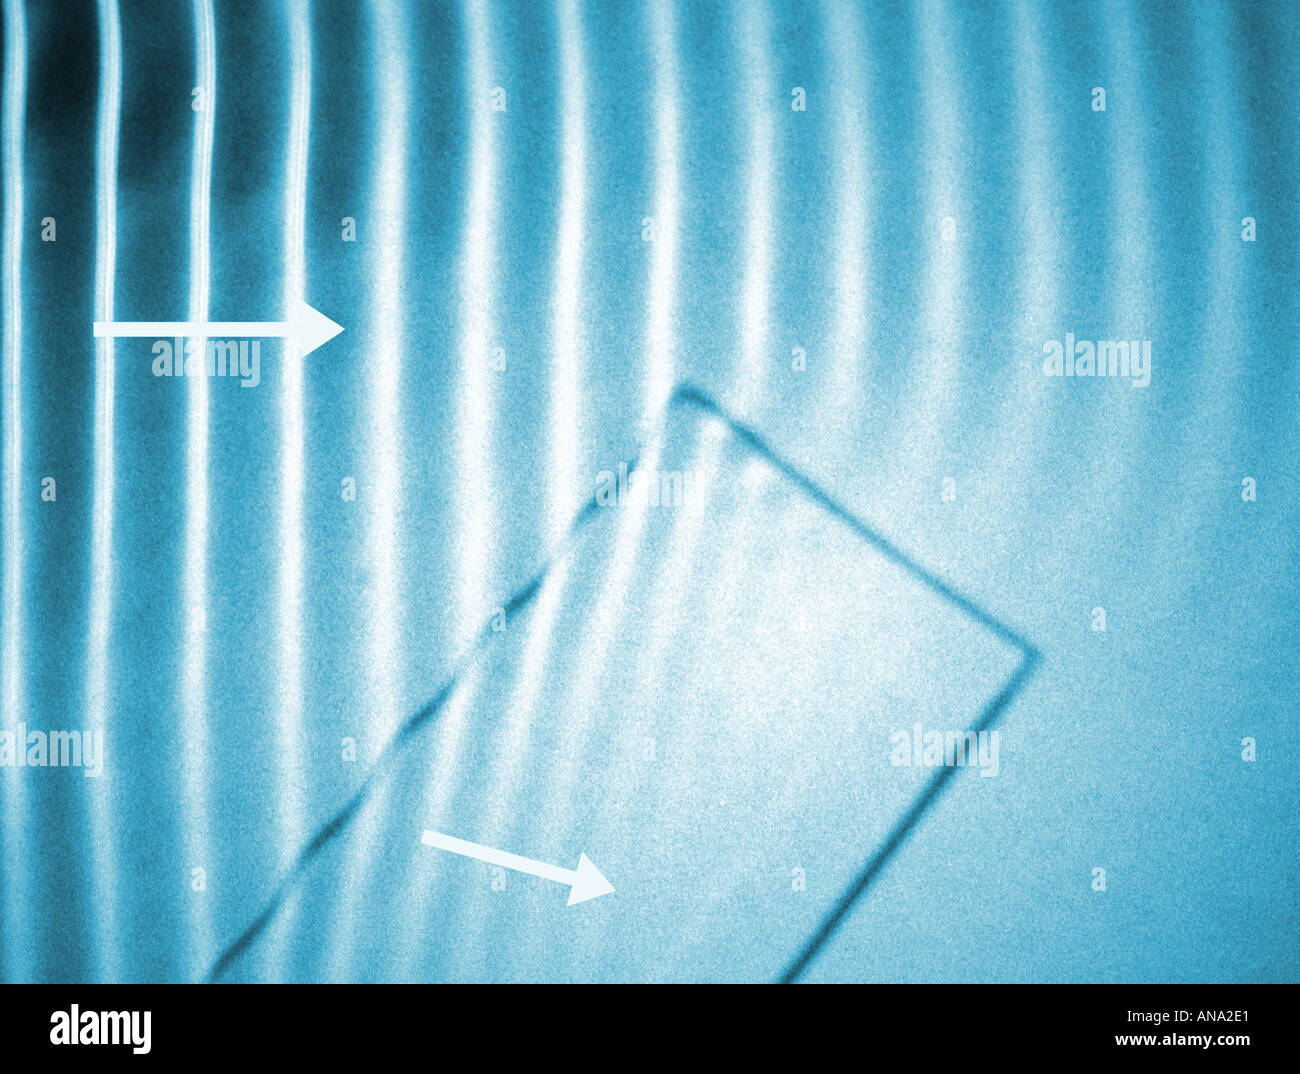 refraction of water waves going from deep to shallow water in a ...